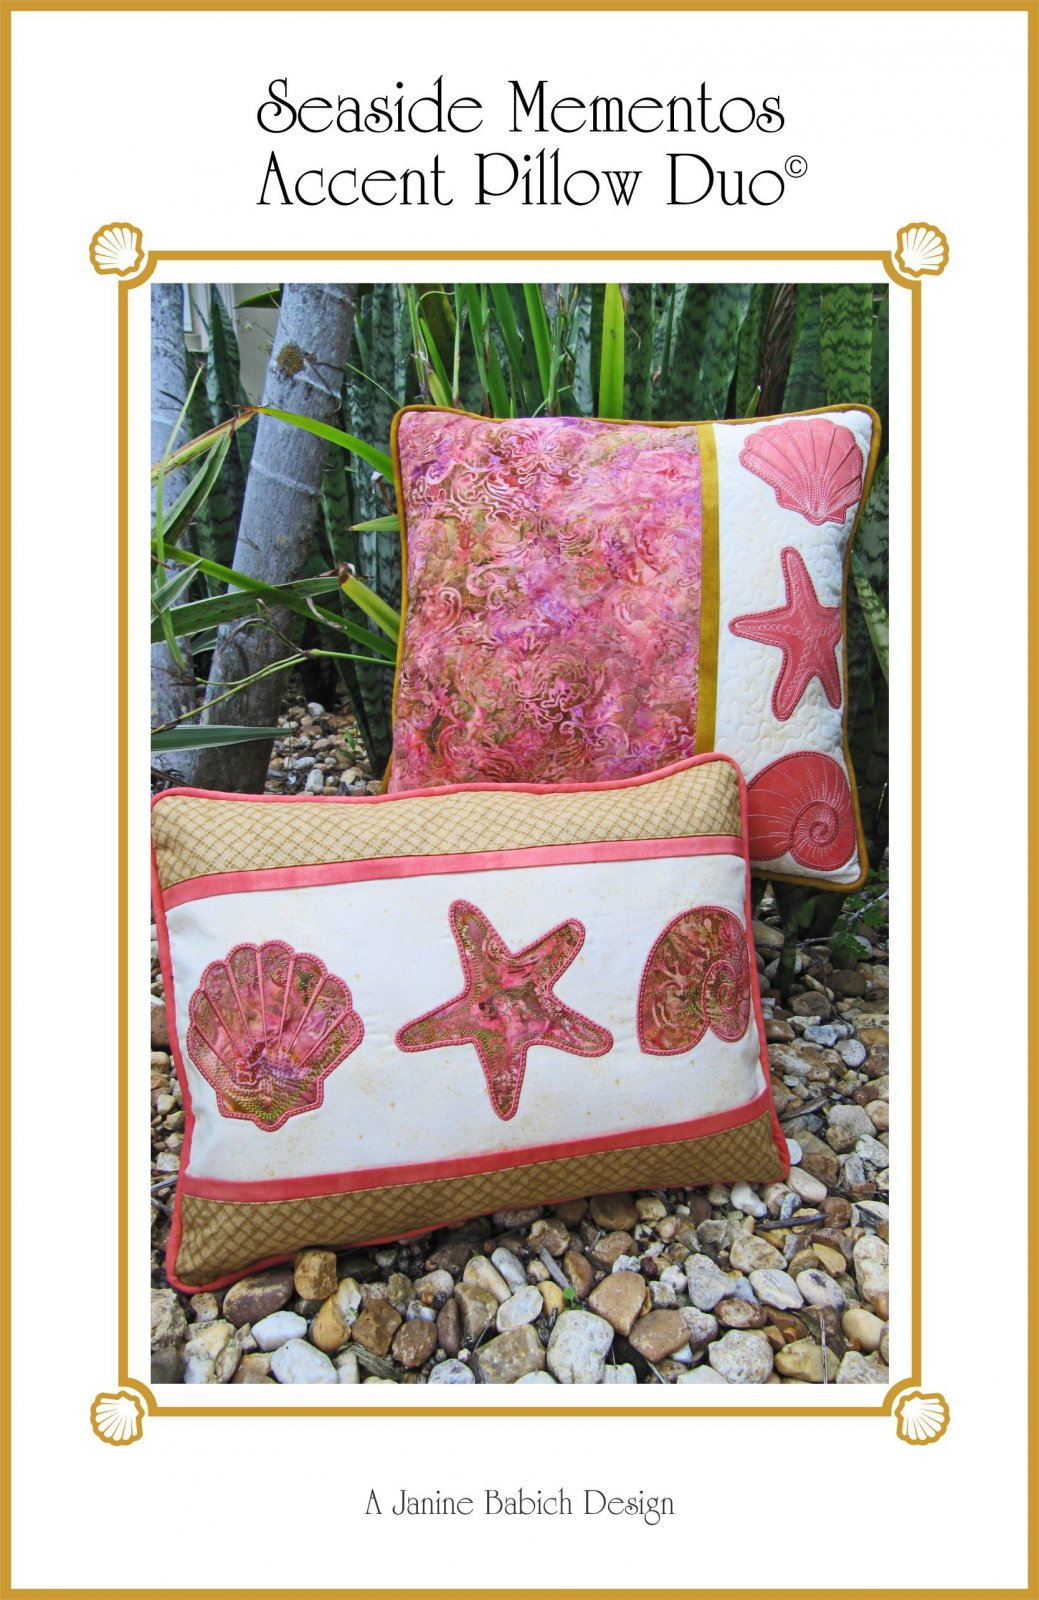 CD Seaside Mementos Accent Pillow Duo Machine Embroidery